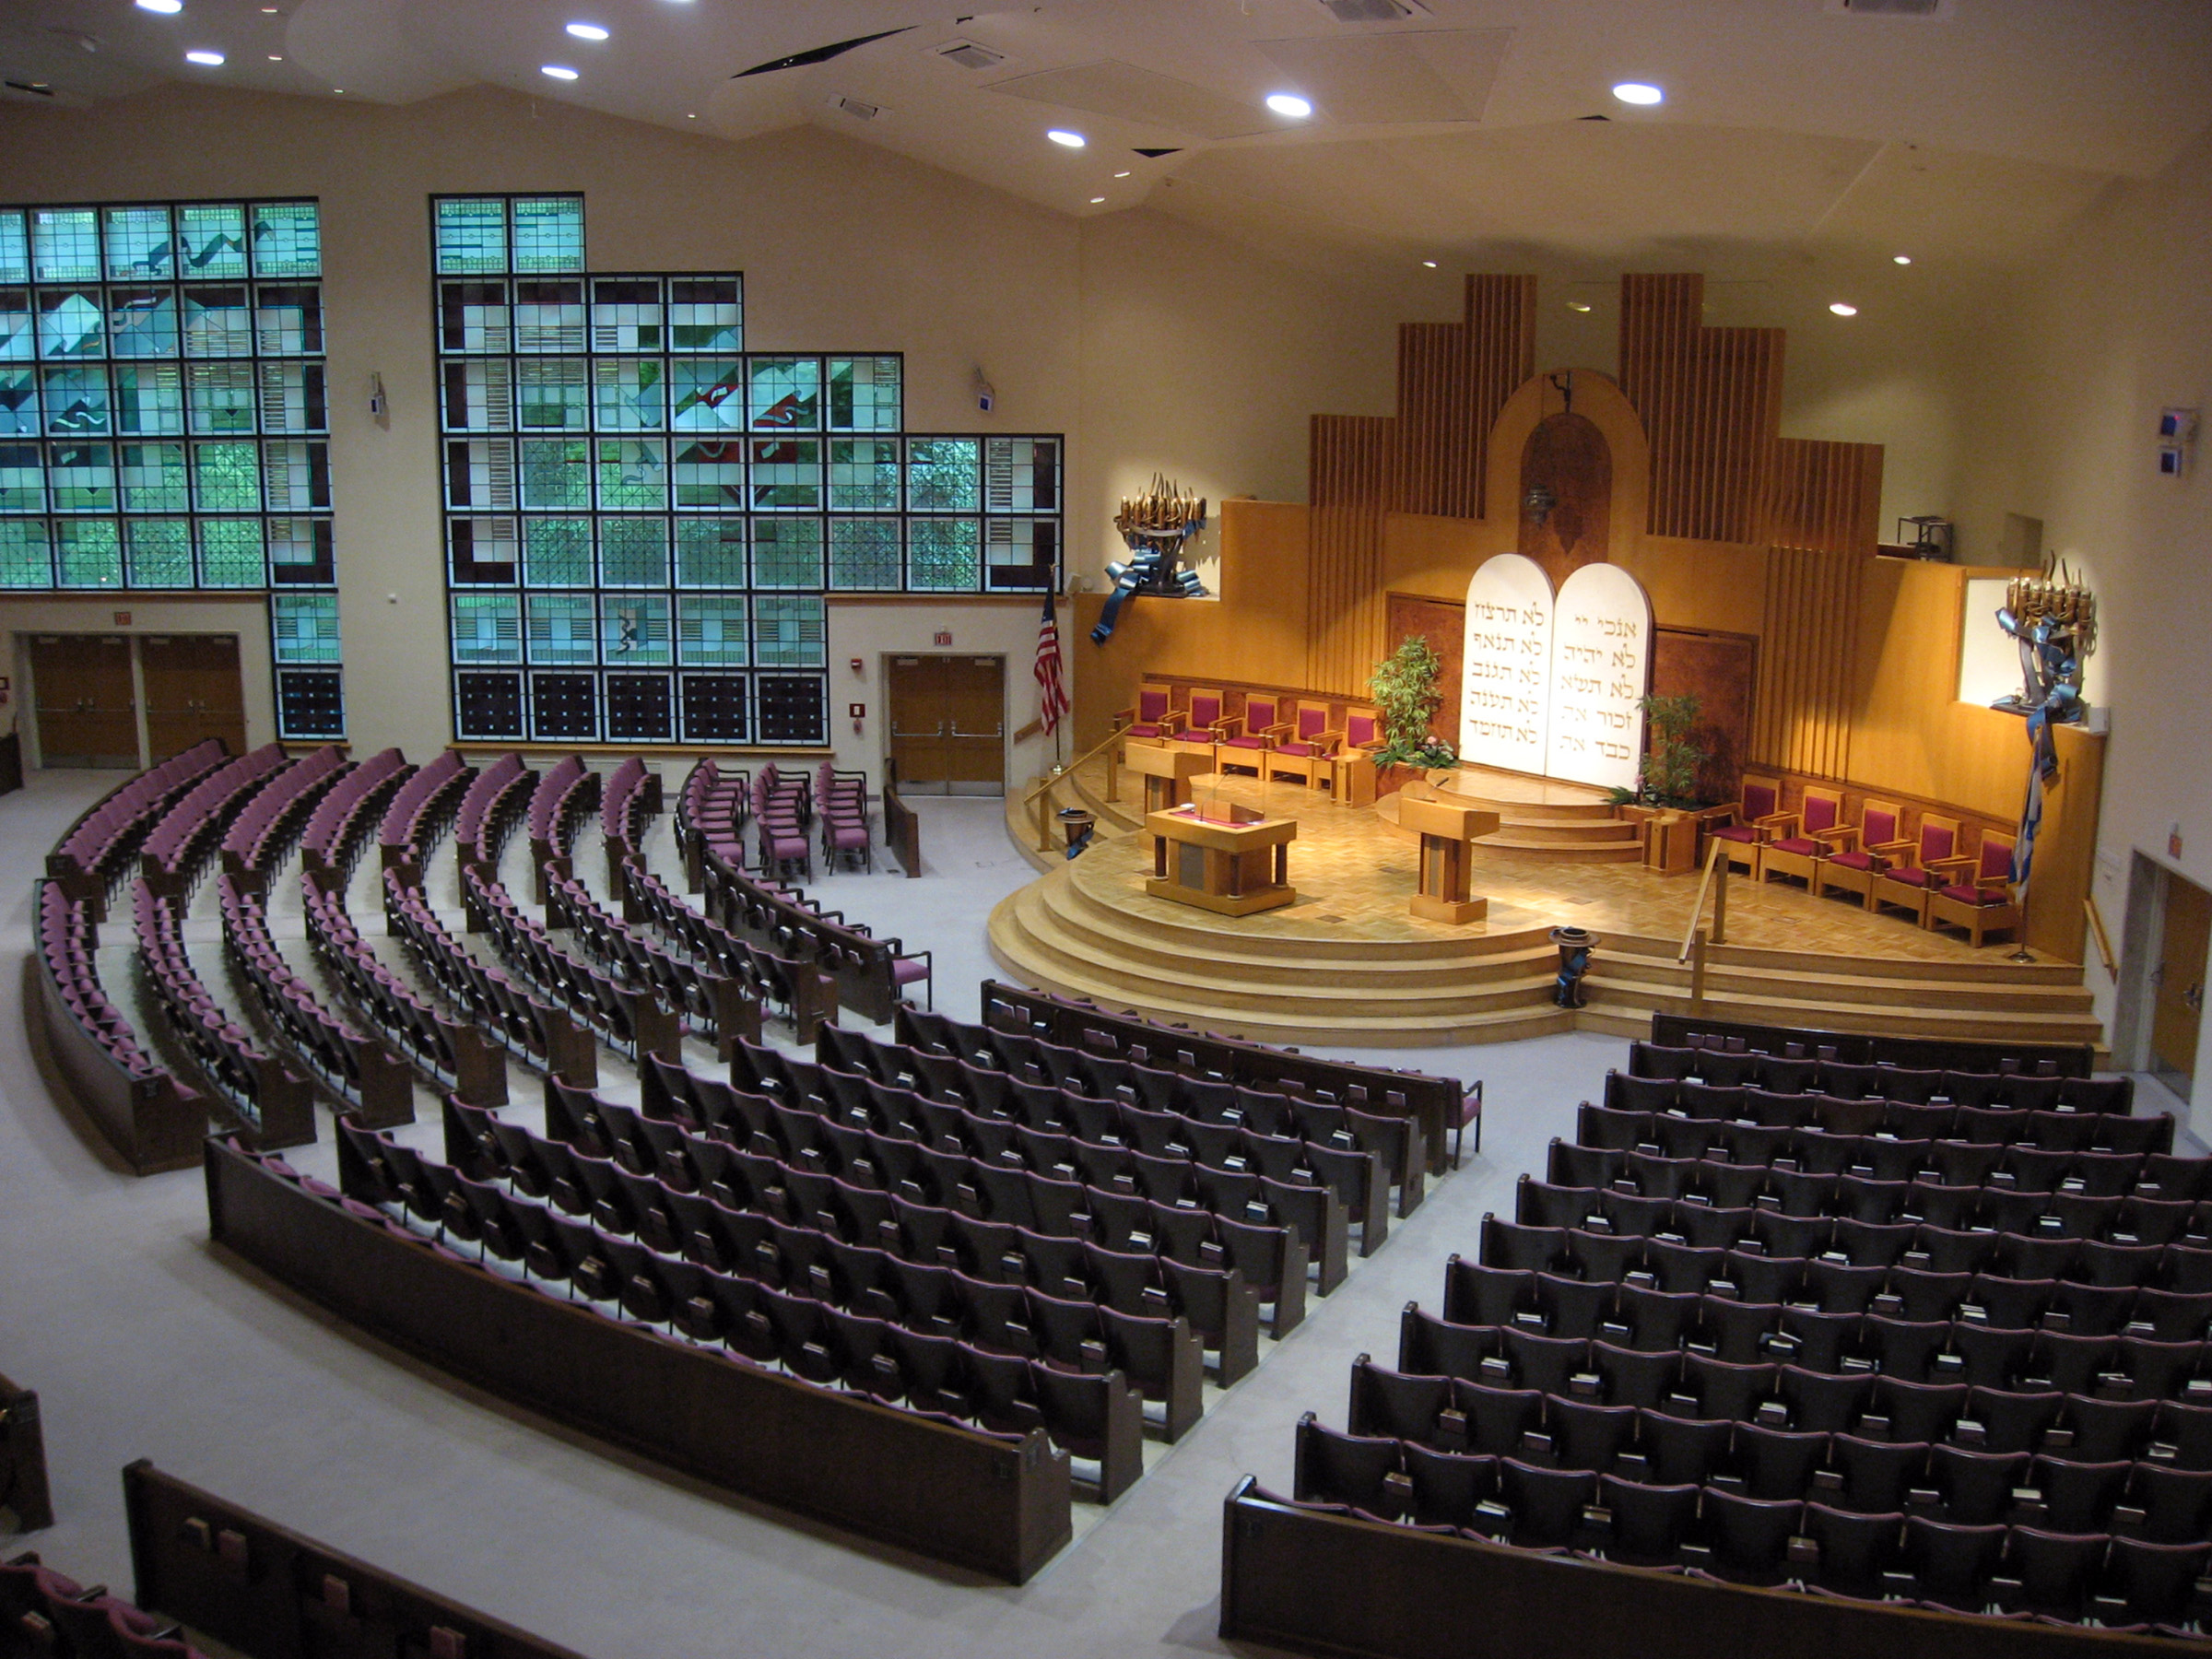 Kaufmann Sanctuary, which can seat over 2,000 people. Washington Hebrew Congregation. (Image reproduced under Fair Use.)